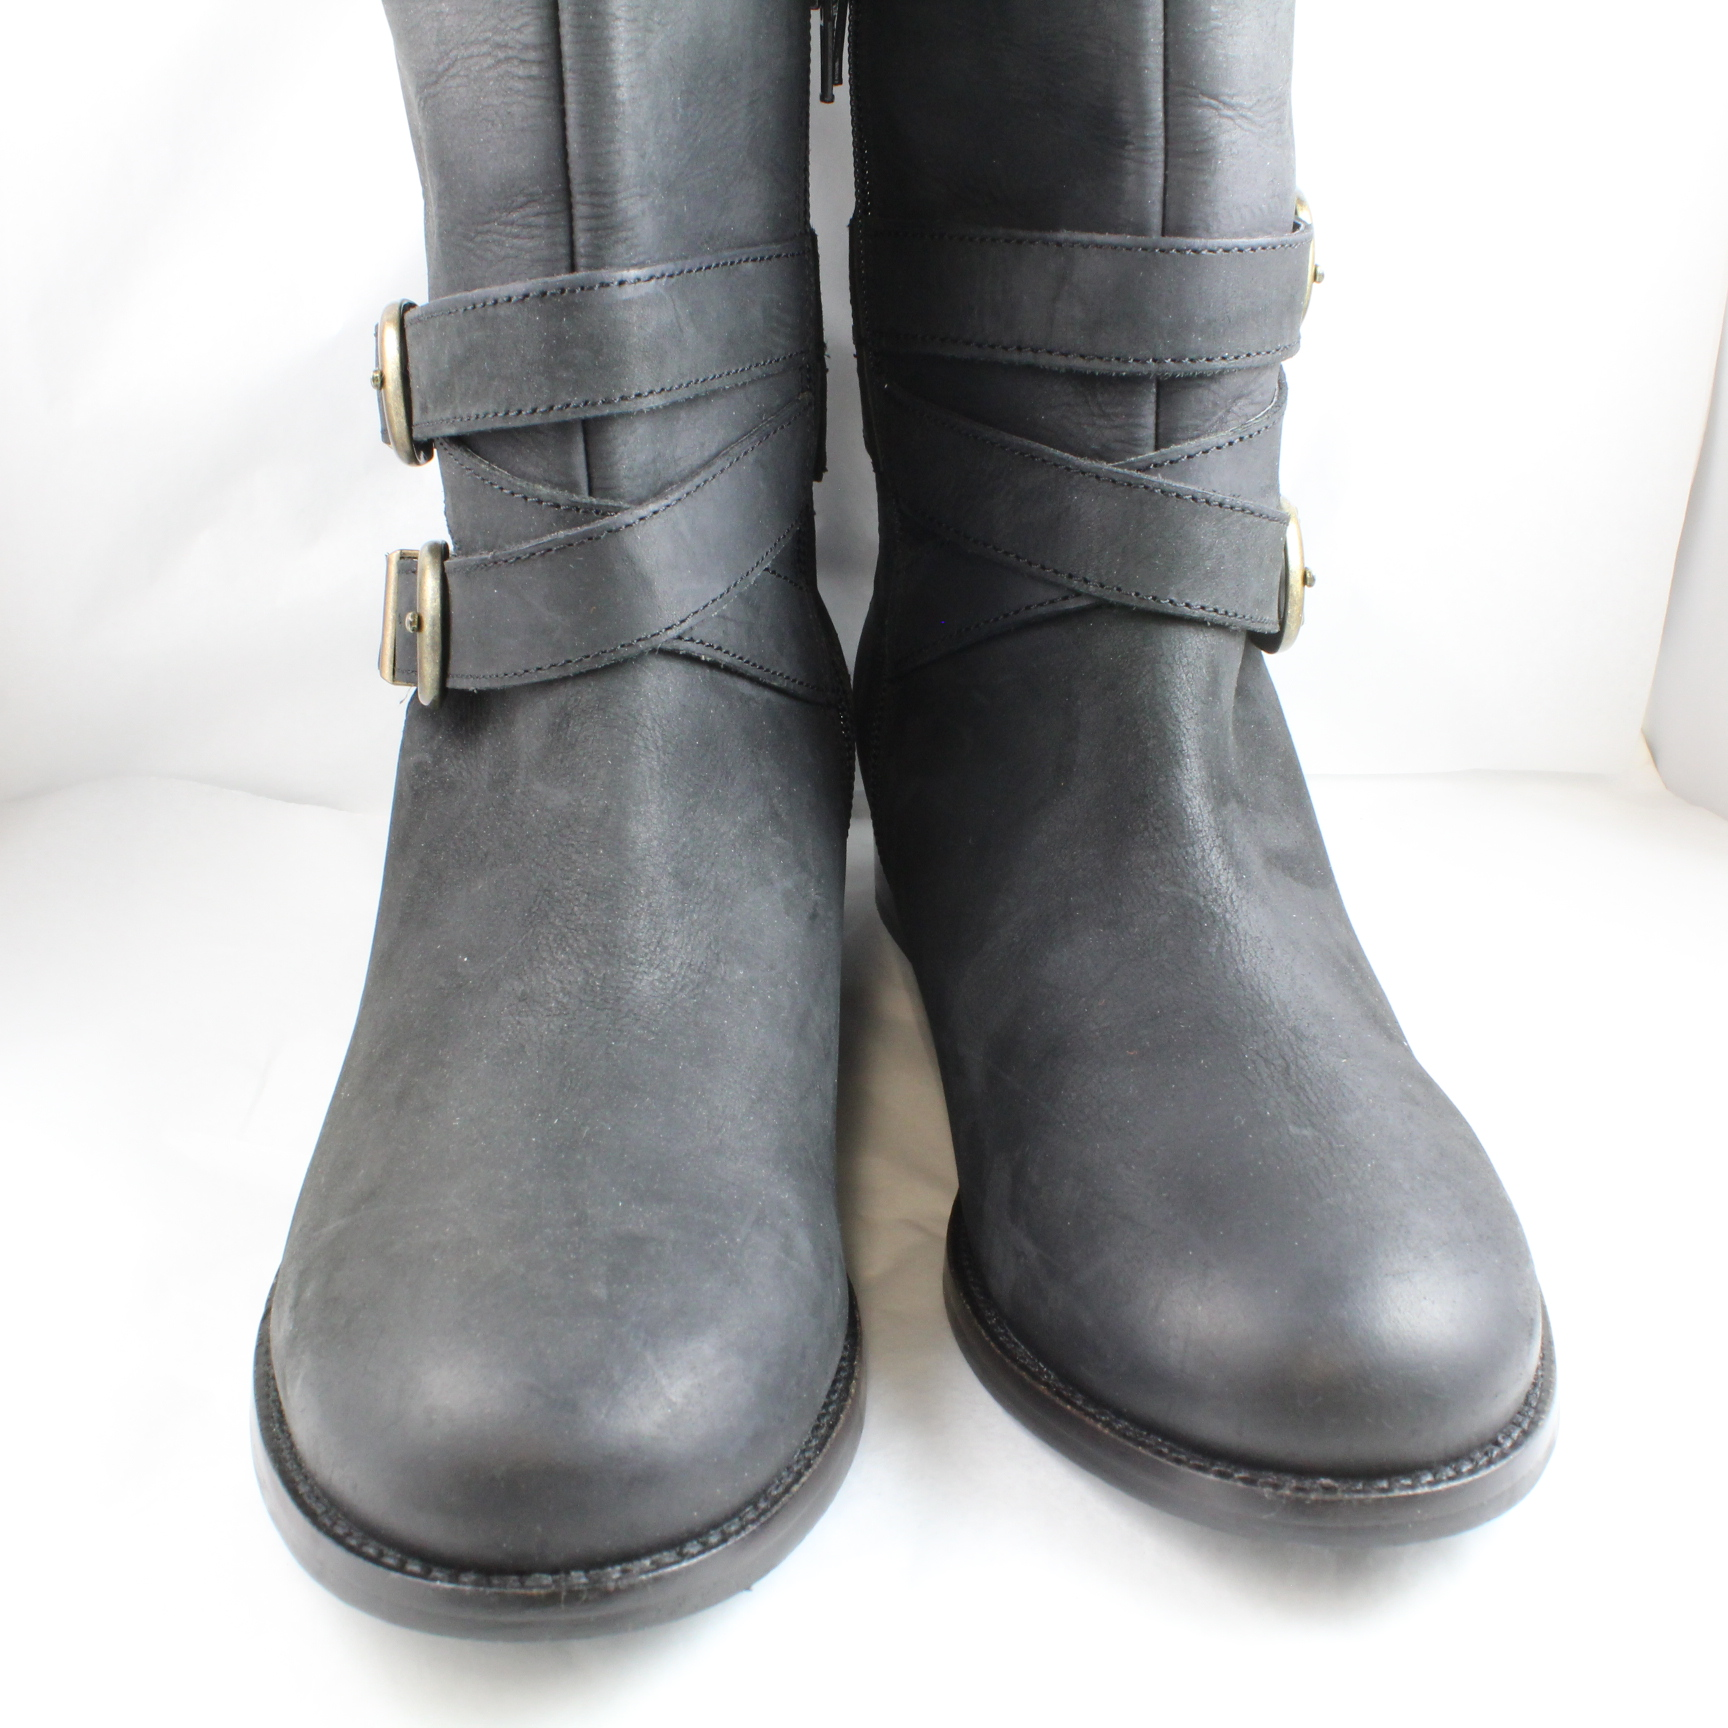 womens office black leather knee high boots uk size 6 ex